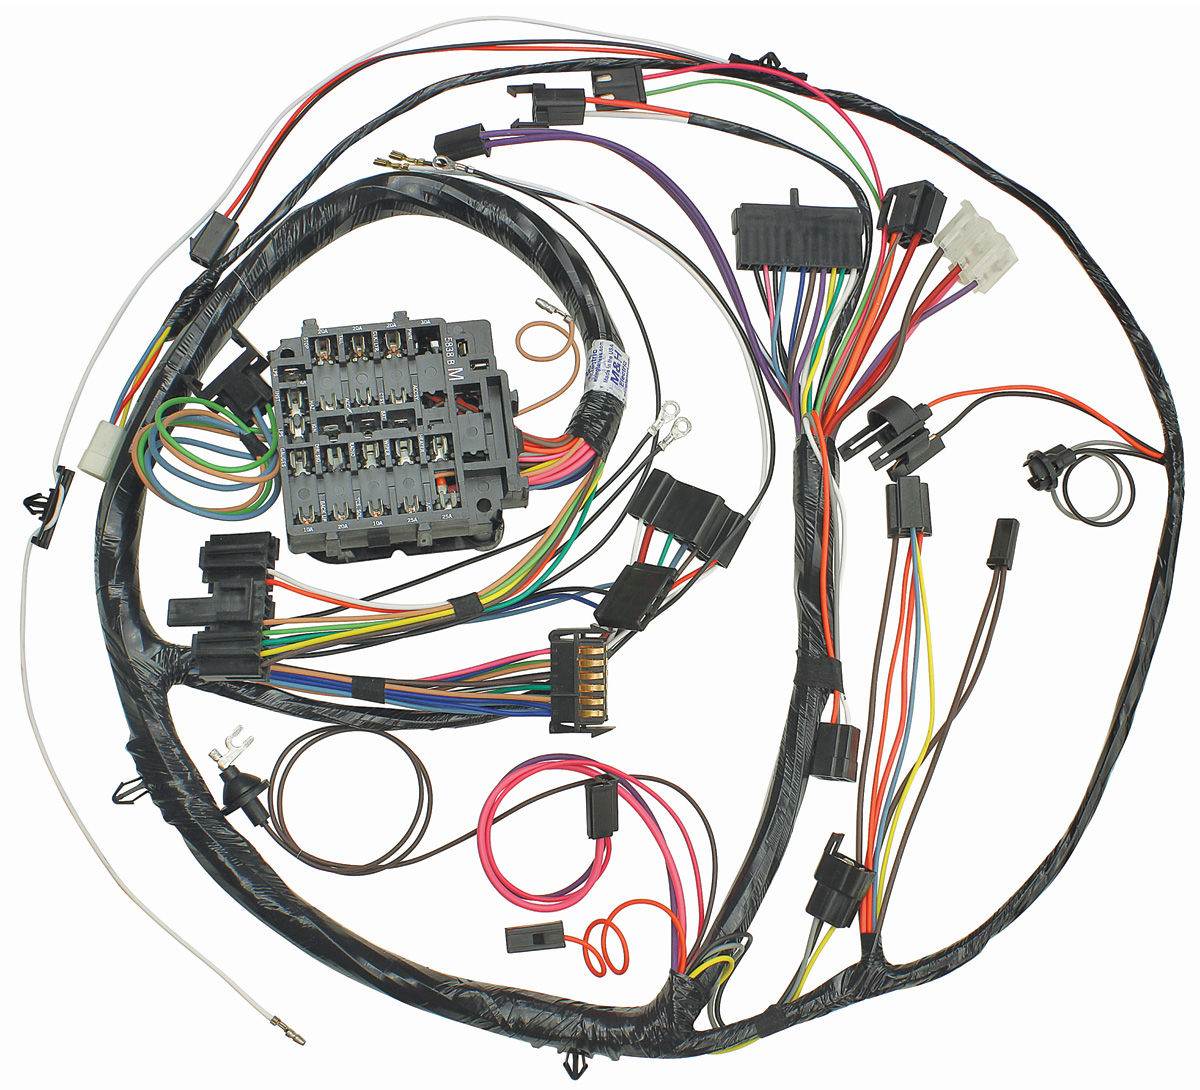 1971 chevelle dash wiring diagram 71 chevelle wiring harness wiring diagram data  71 chevelle wiring harness wiring